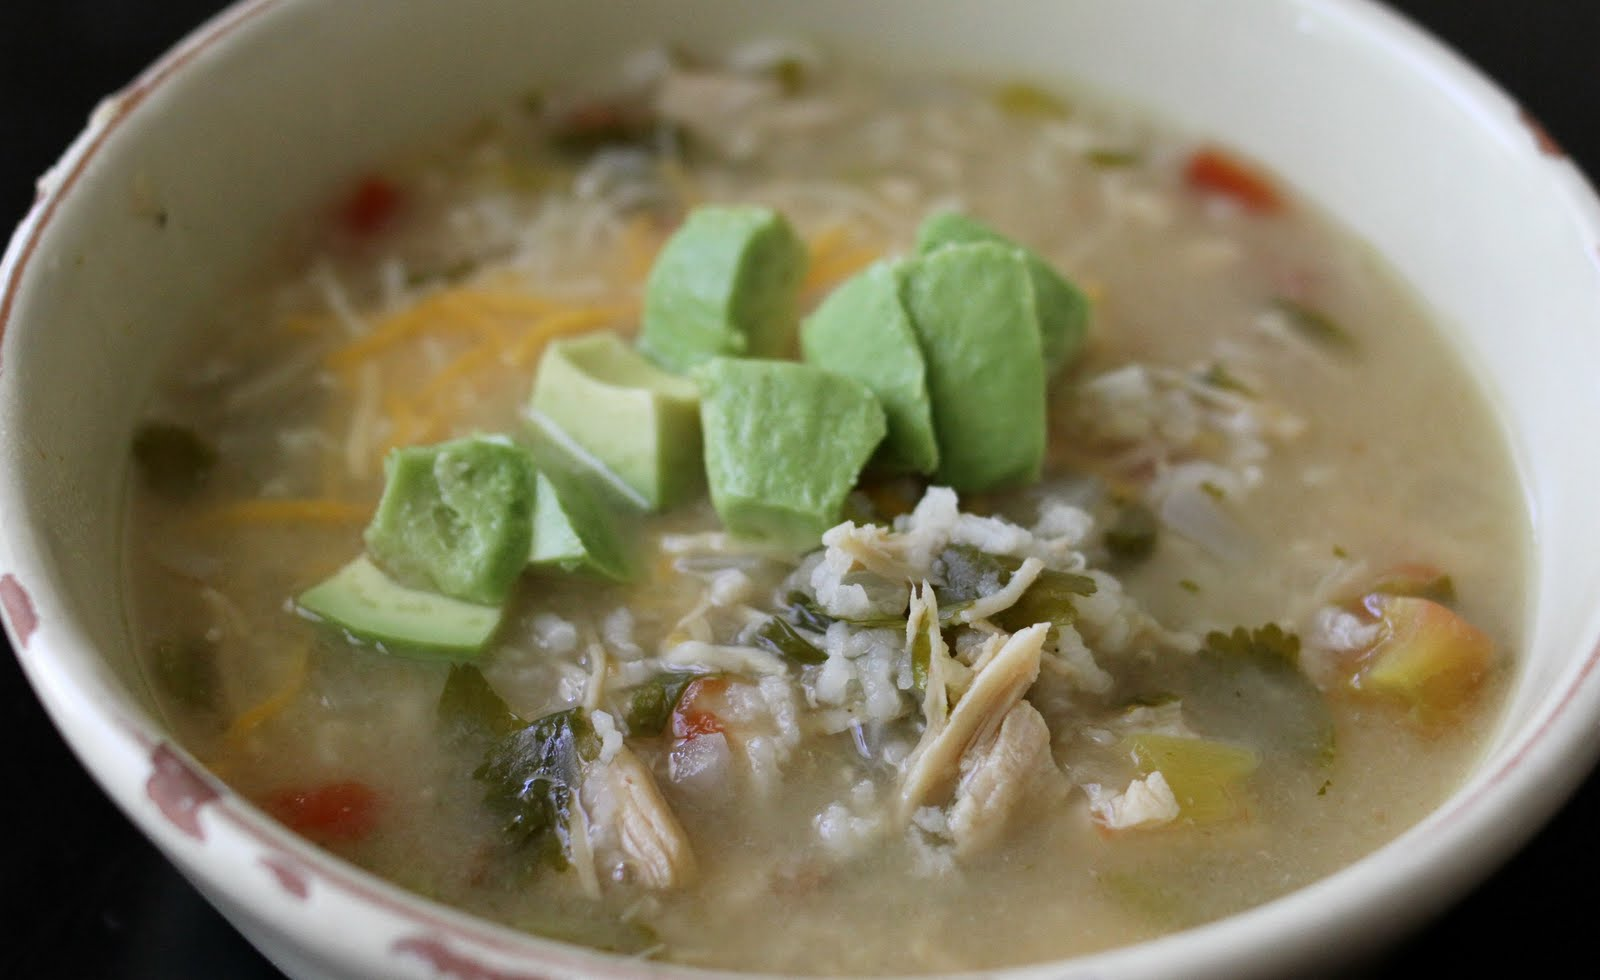 On My Menu: Green Chili Chicken & Lime Soup